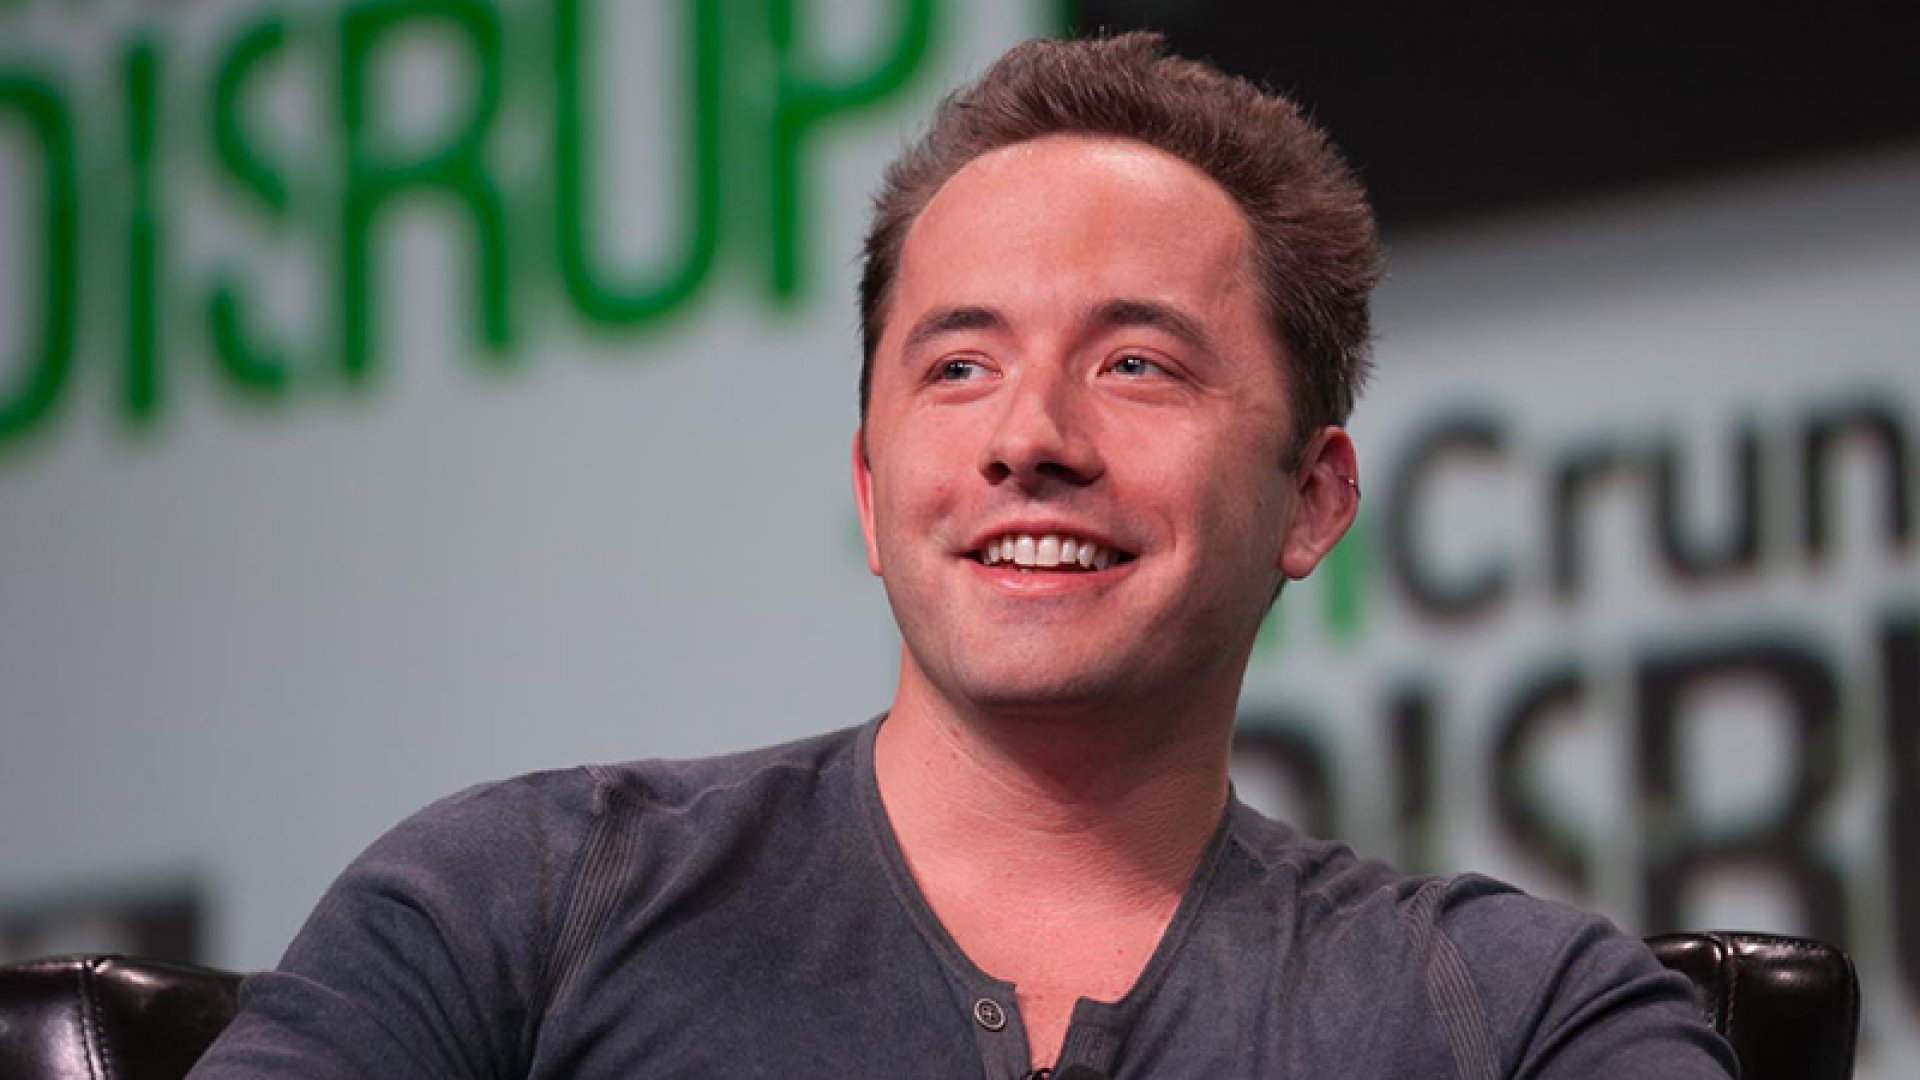 Dropbox CEO: How to Succeed as a First-Time Founder